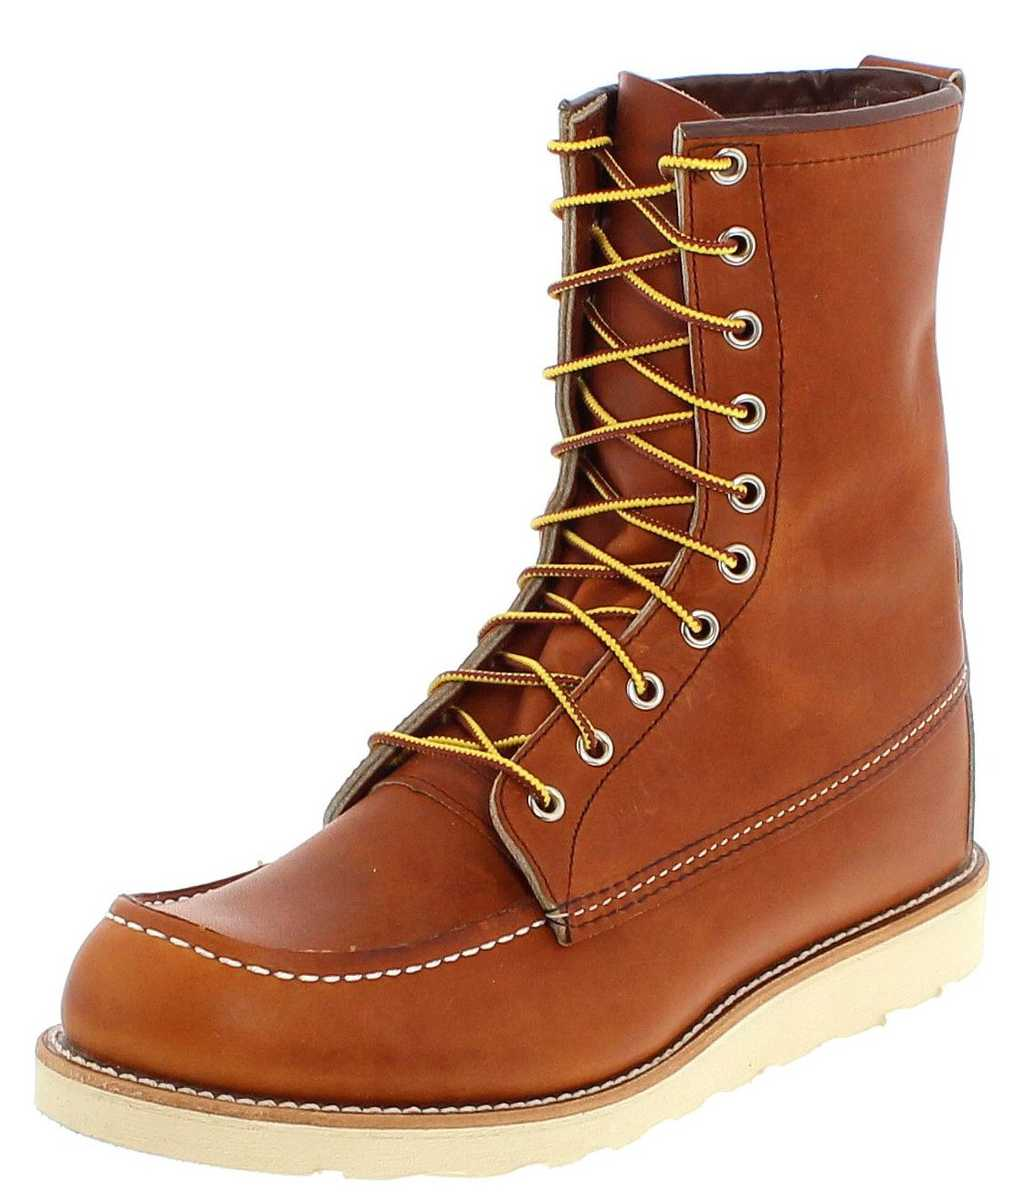 Red Wing Shoes 8-INCH BOOT 0877 Oro-Legacy Work Boots - brown